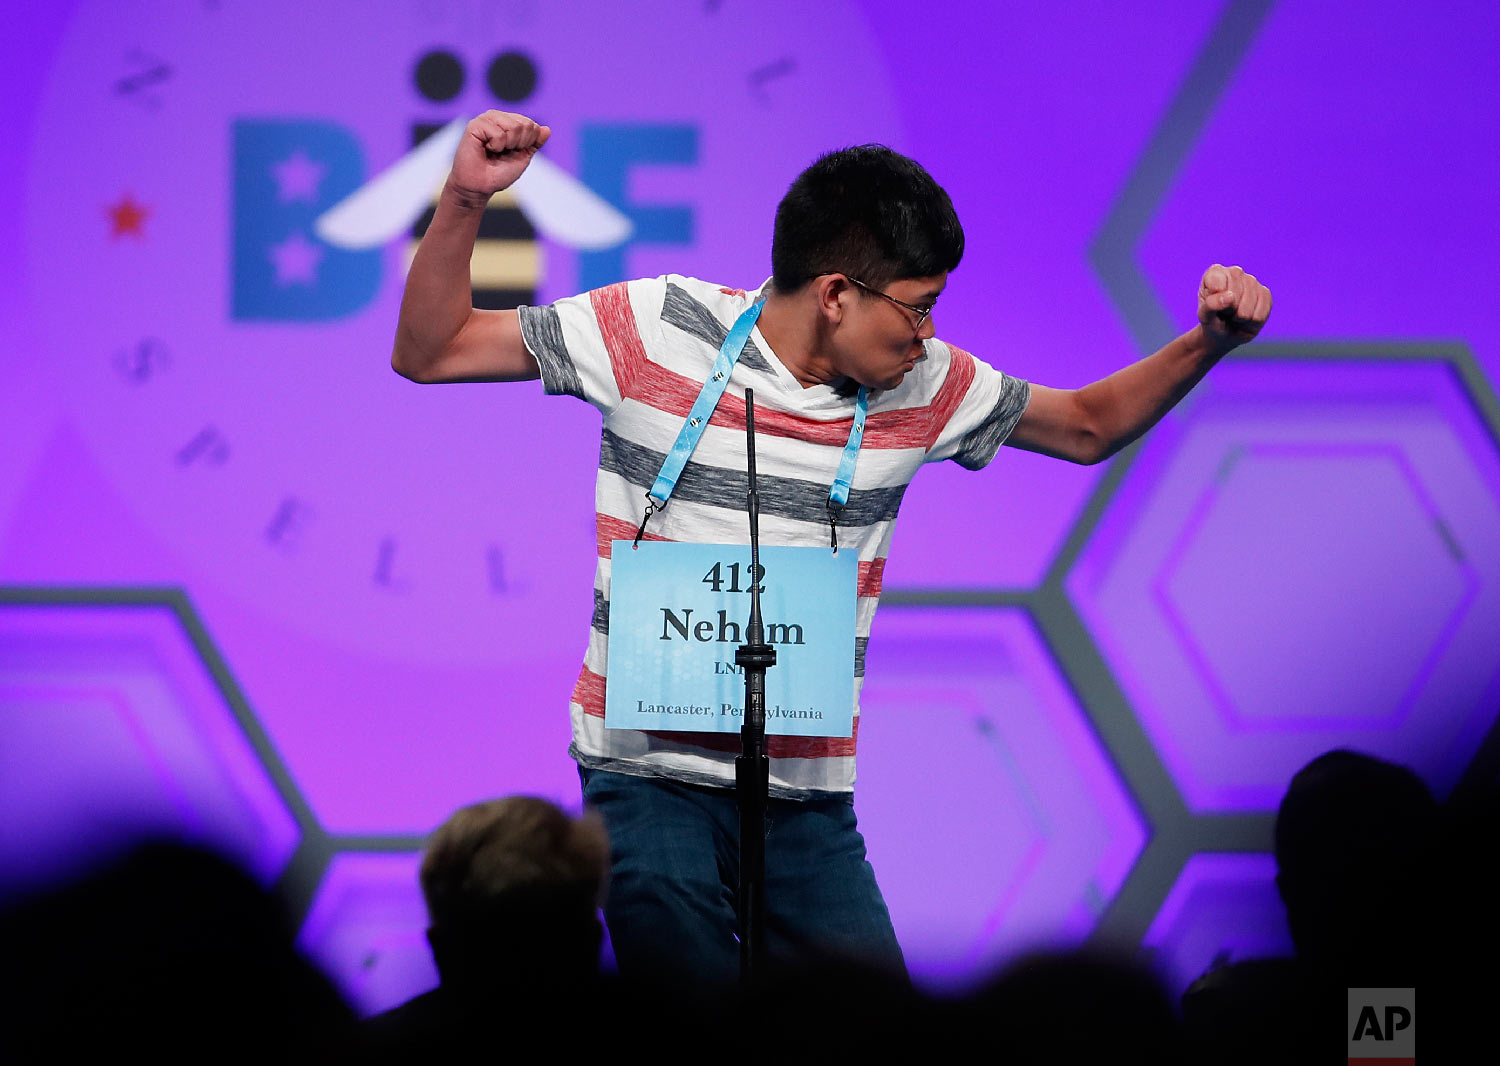 Nehem Felices, 13, from Lancaster, Pa., reacts after spelling a word correctly during the 3rd Round of the Scripps National Spelling Bee in Oxon Hill, Md., Wednesday, May 30, 2018. (AP Photo/Carolyn Kaster)